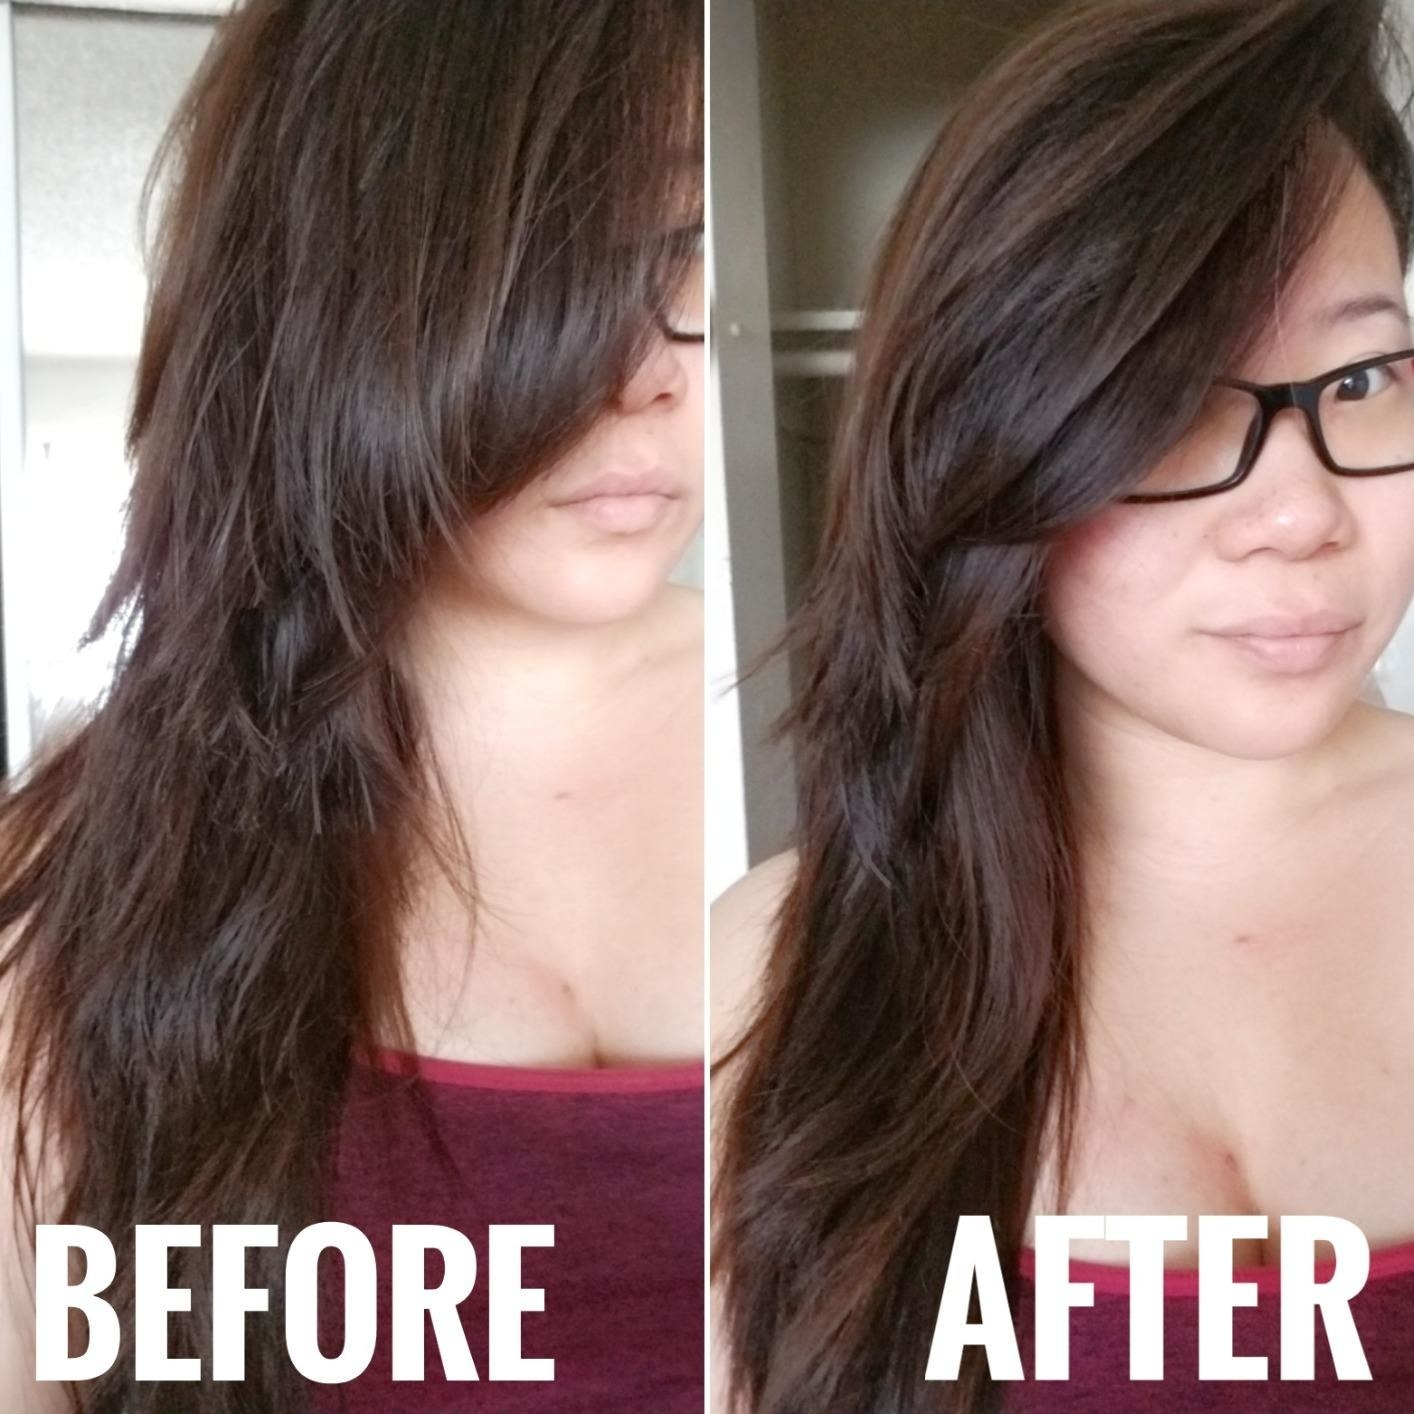 Reviewer's before and after showing the serum added shine and reduced frizziness